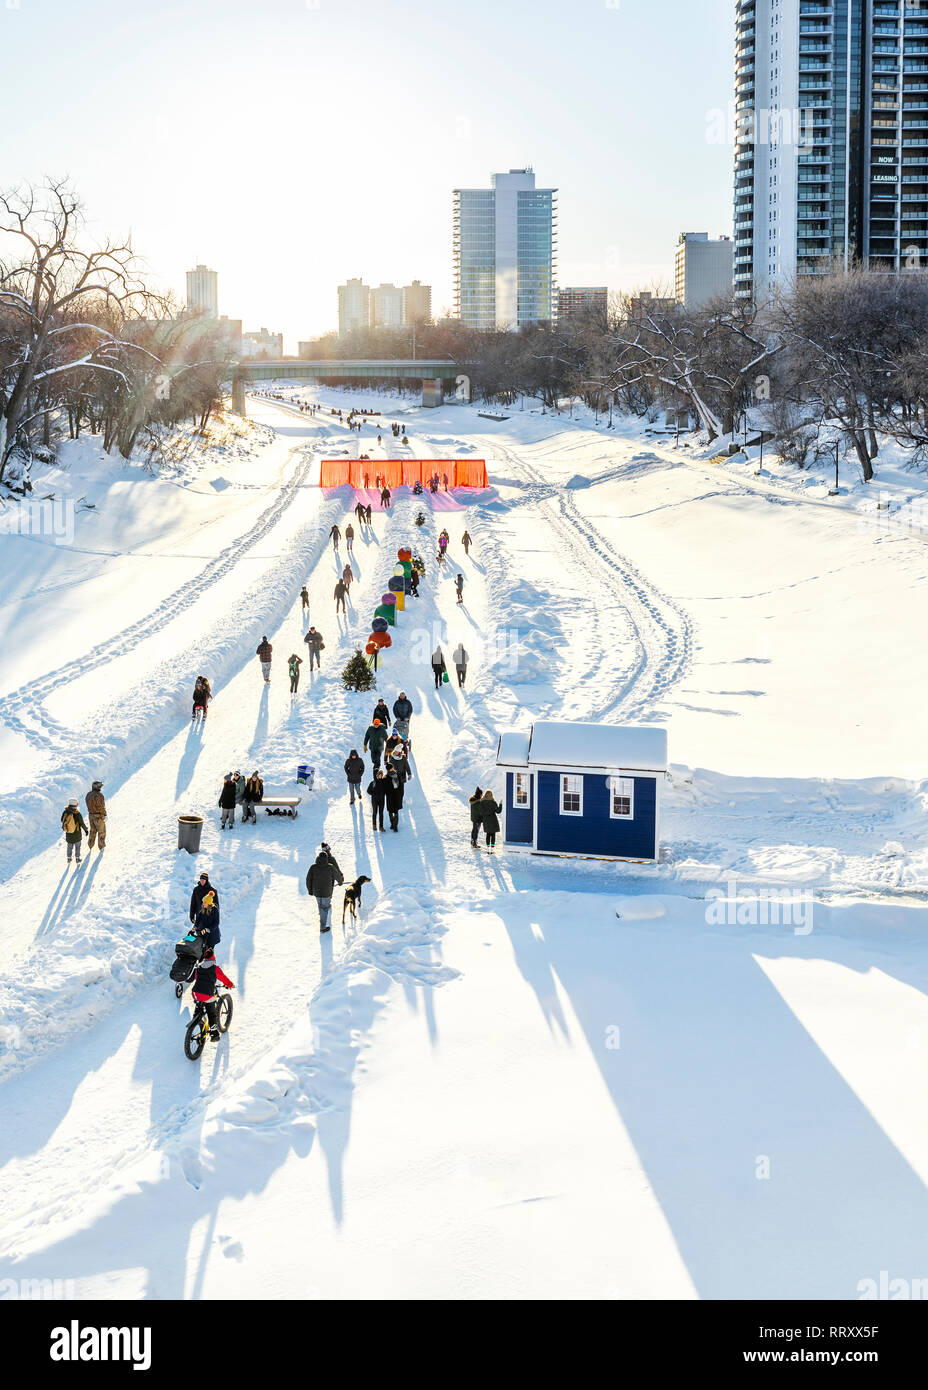 Ice skaters, cyclists, dog walkers on the frozen Assiniboine River, part of the Red River Mutual Trail, The Forks, Winnipeg, Manitoba, Canada. Stock Photo